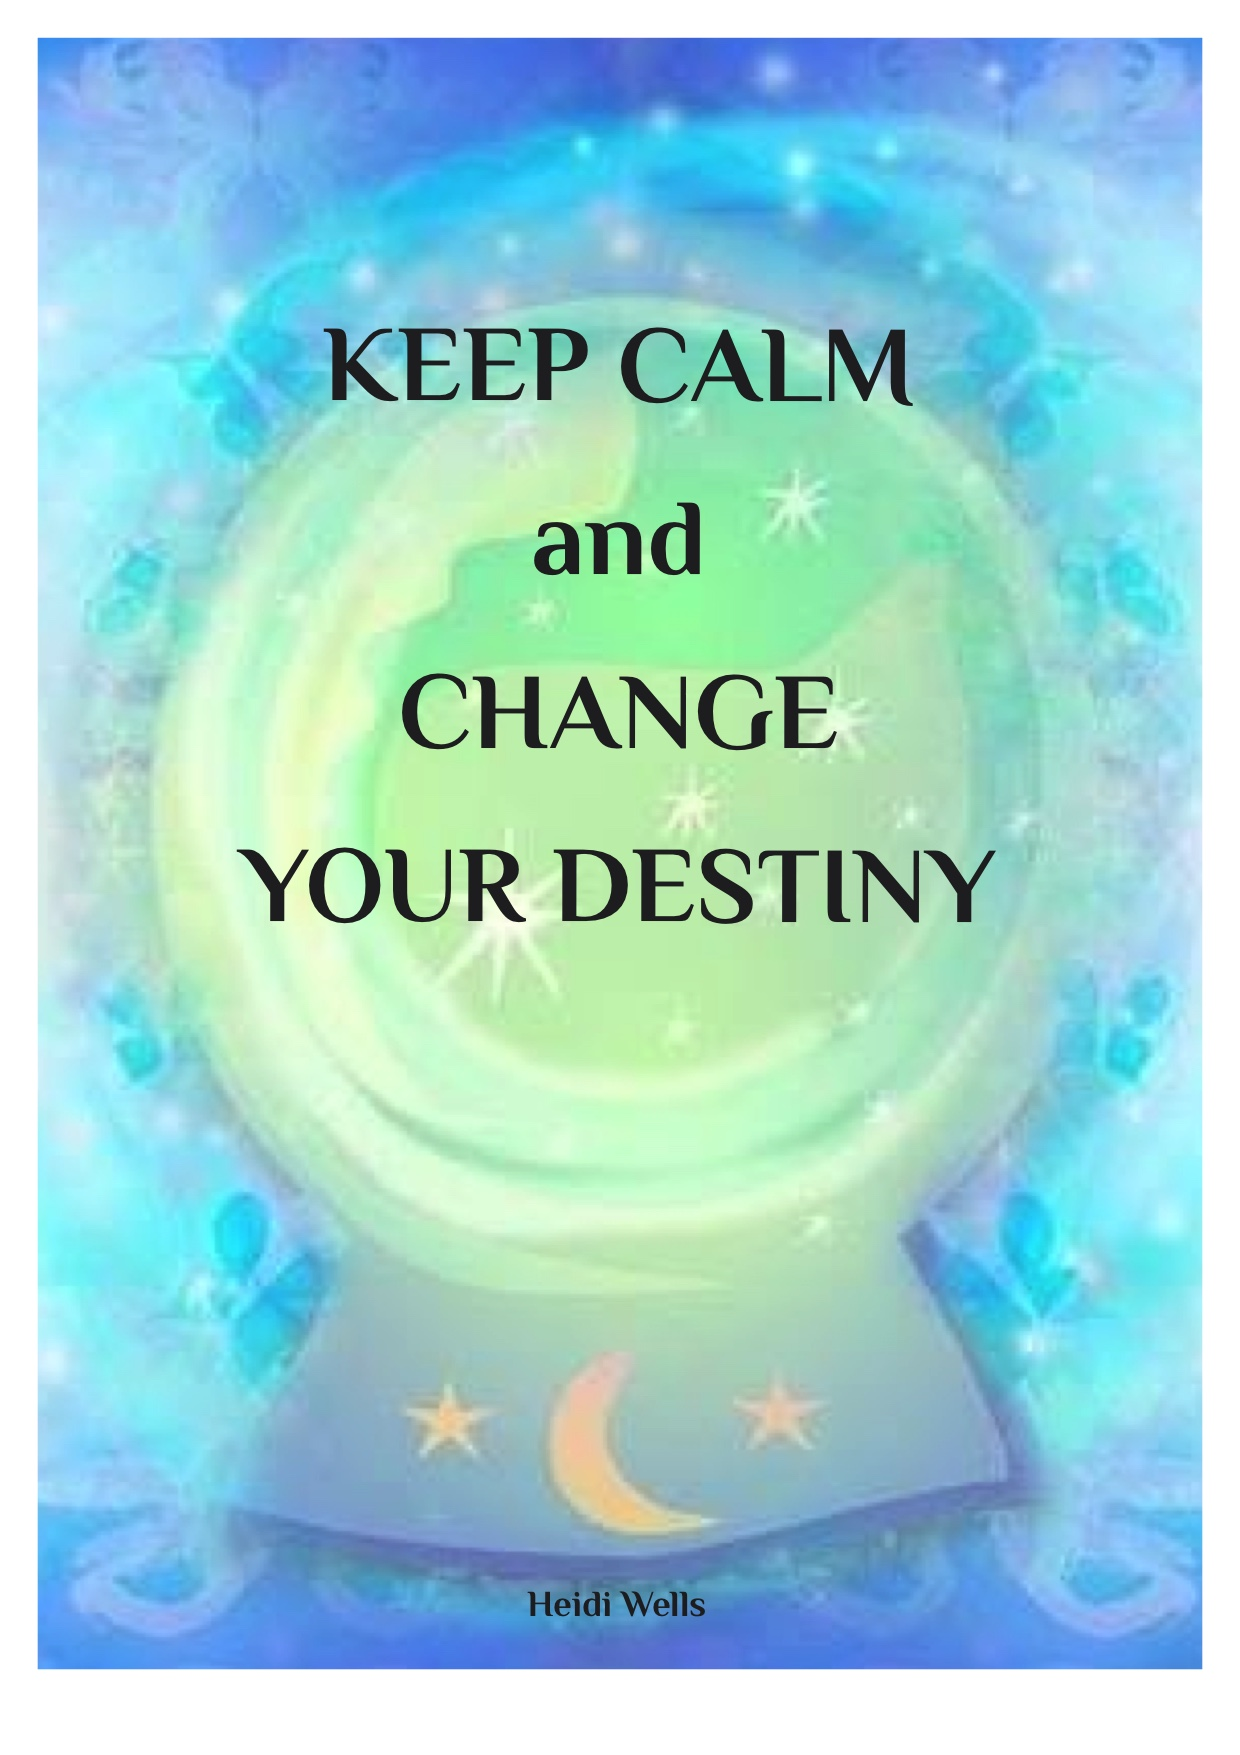 Keep Calm and Change Your Destiny, 8 page Workbook by Heidi Wells, Psychic Clairvoyant and Emotional Wellbeing Coach in Twickenham, London 020 88947343